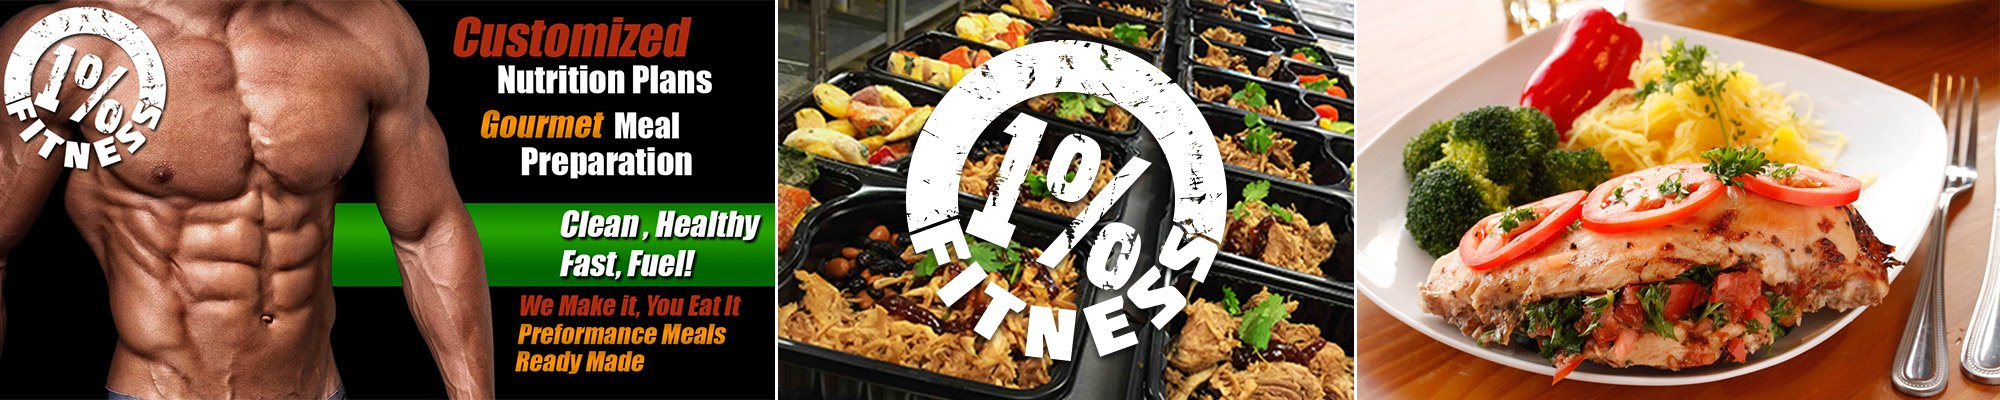 1% Fitness Meal Preparation